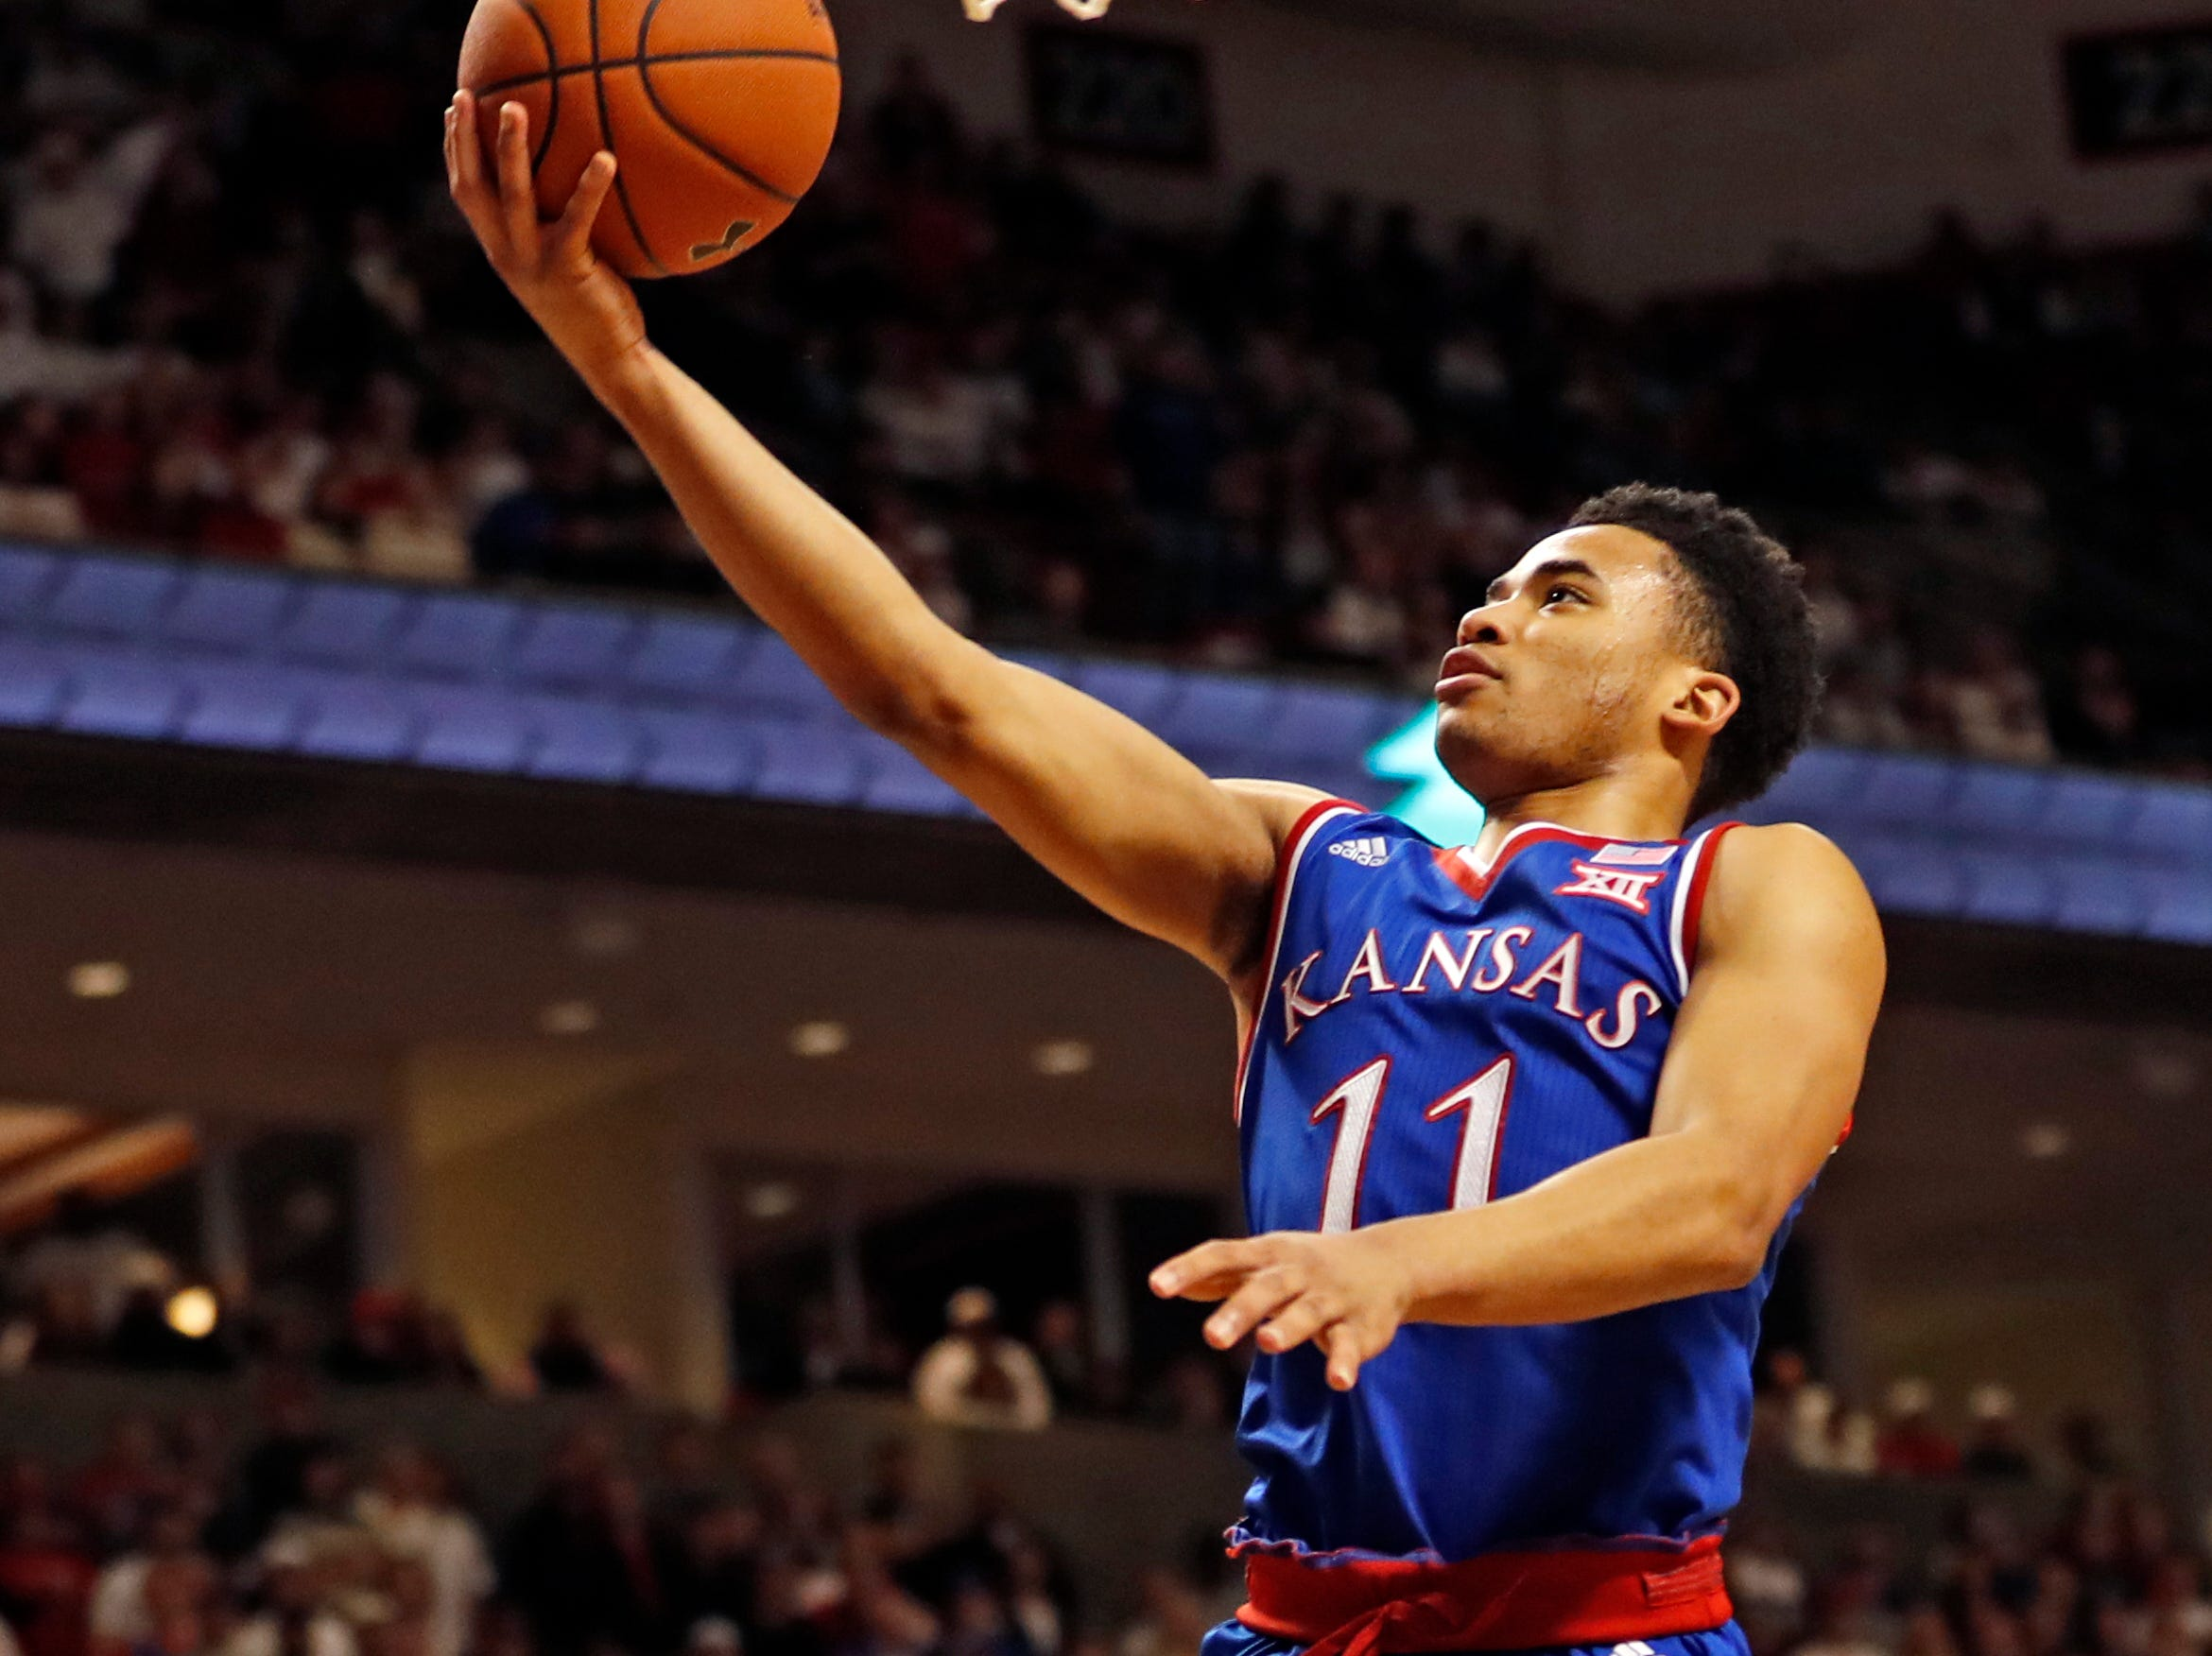 Kansas' Devon Dotson (11) lays up the ball during the first half of the team's NCAA college basketball game against Texas Tech on Saturday, Feb. 23, 2019, in Lubbock, Texas. (AP Photo/Brad Tollefson)